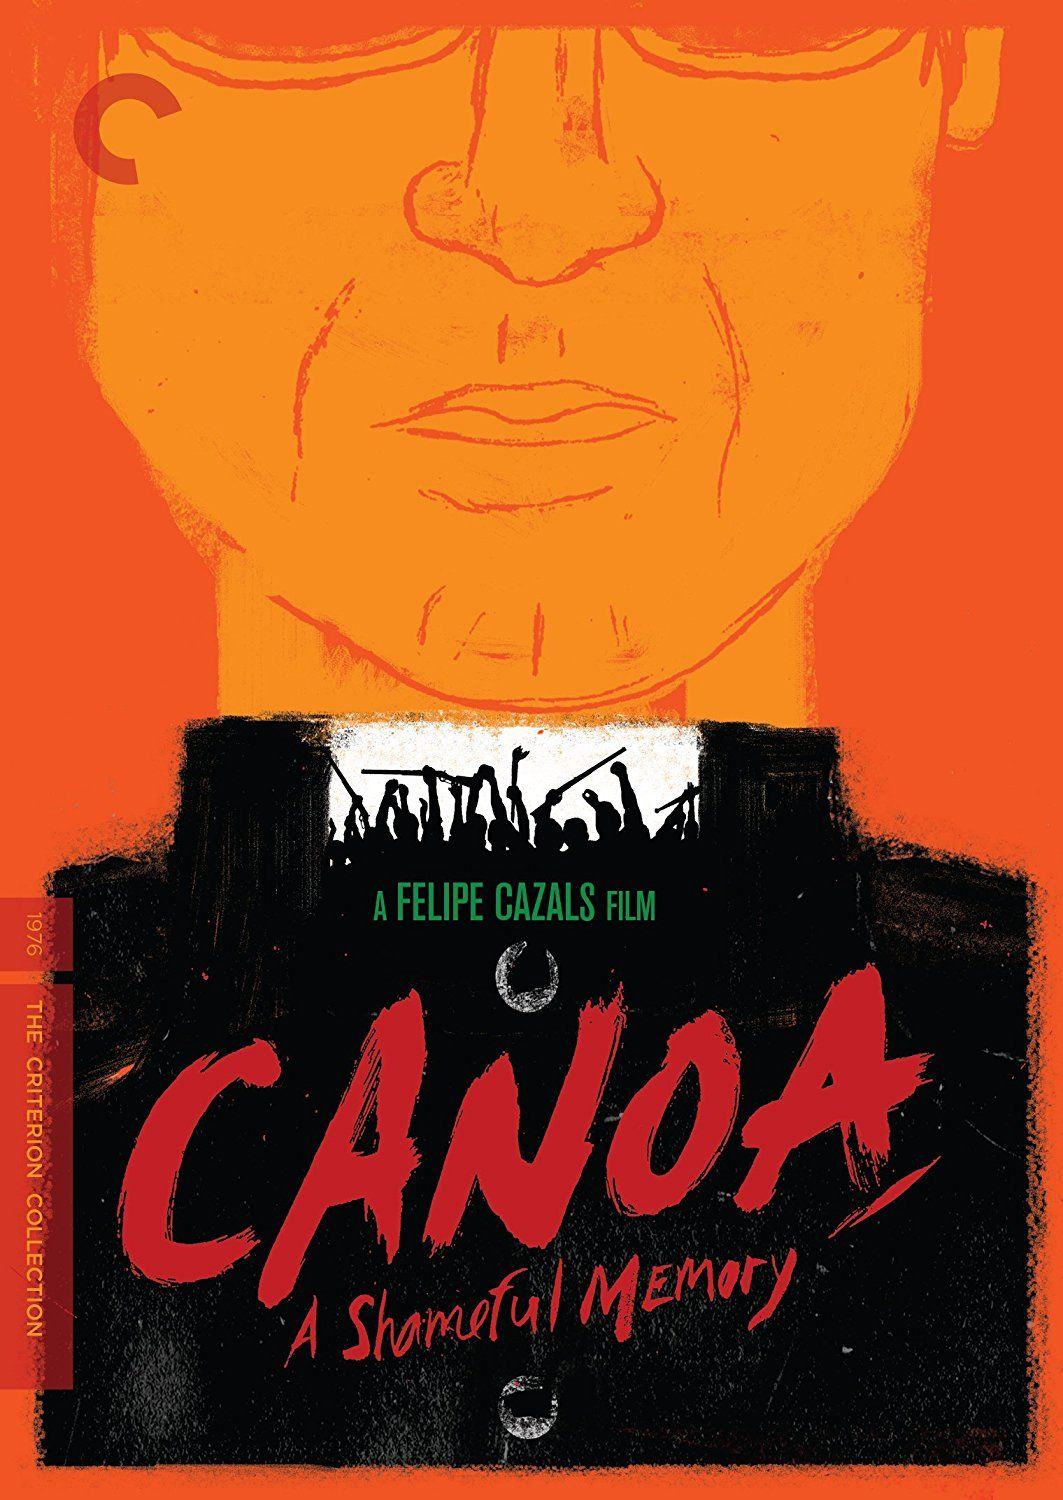 Download Canoa: A Shameful Memory Full-Movie Free